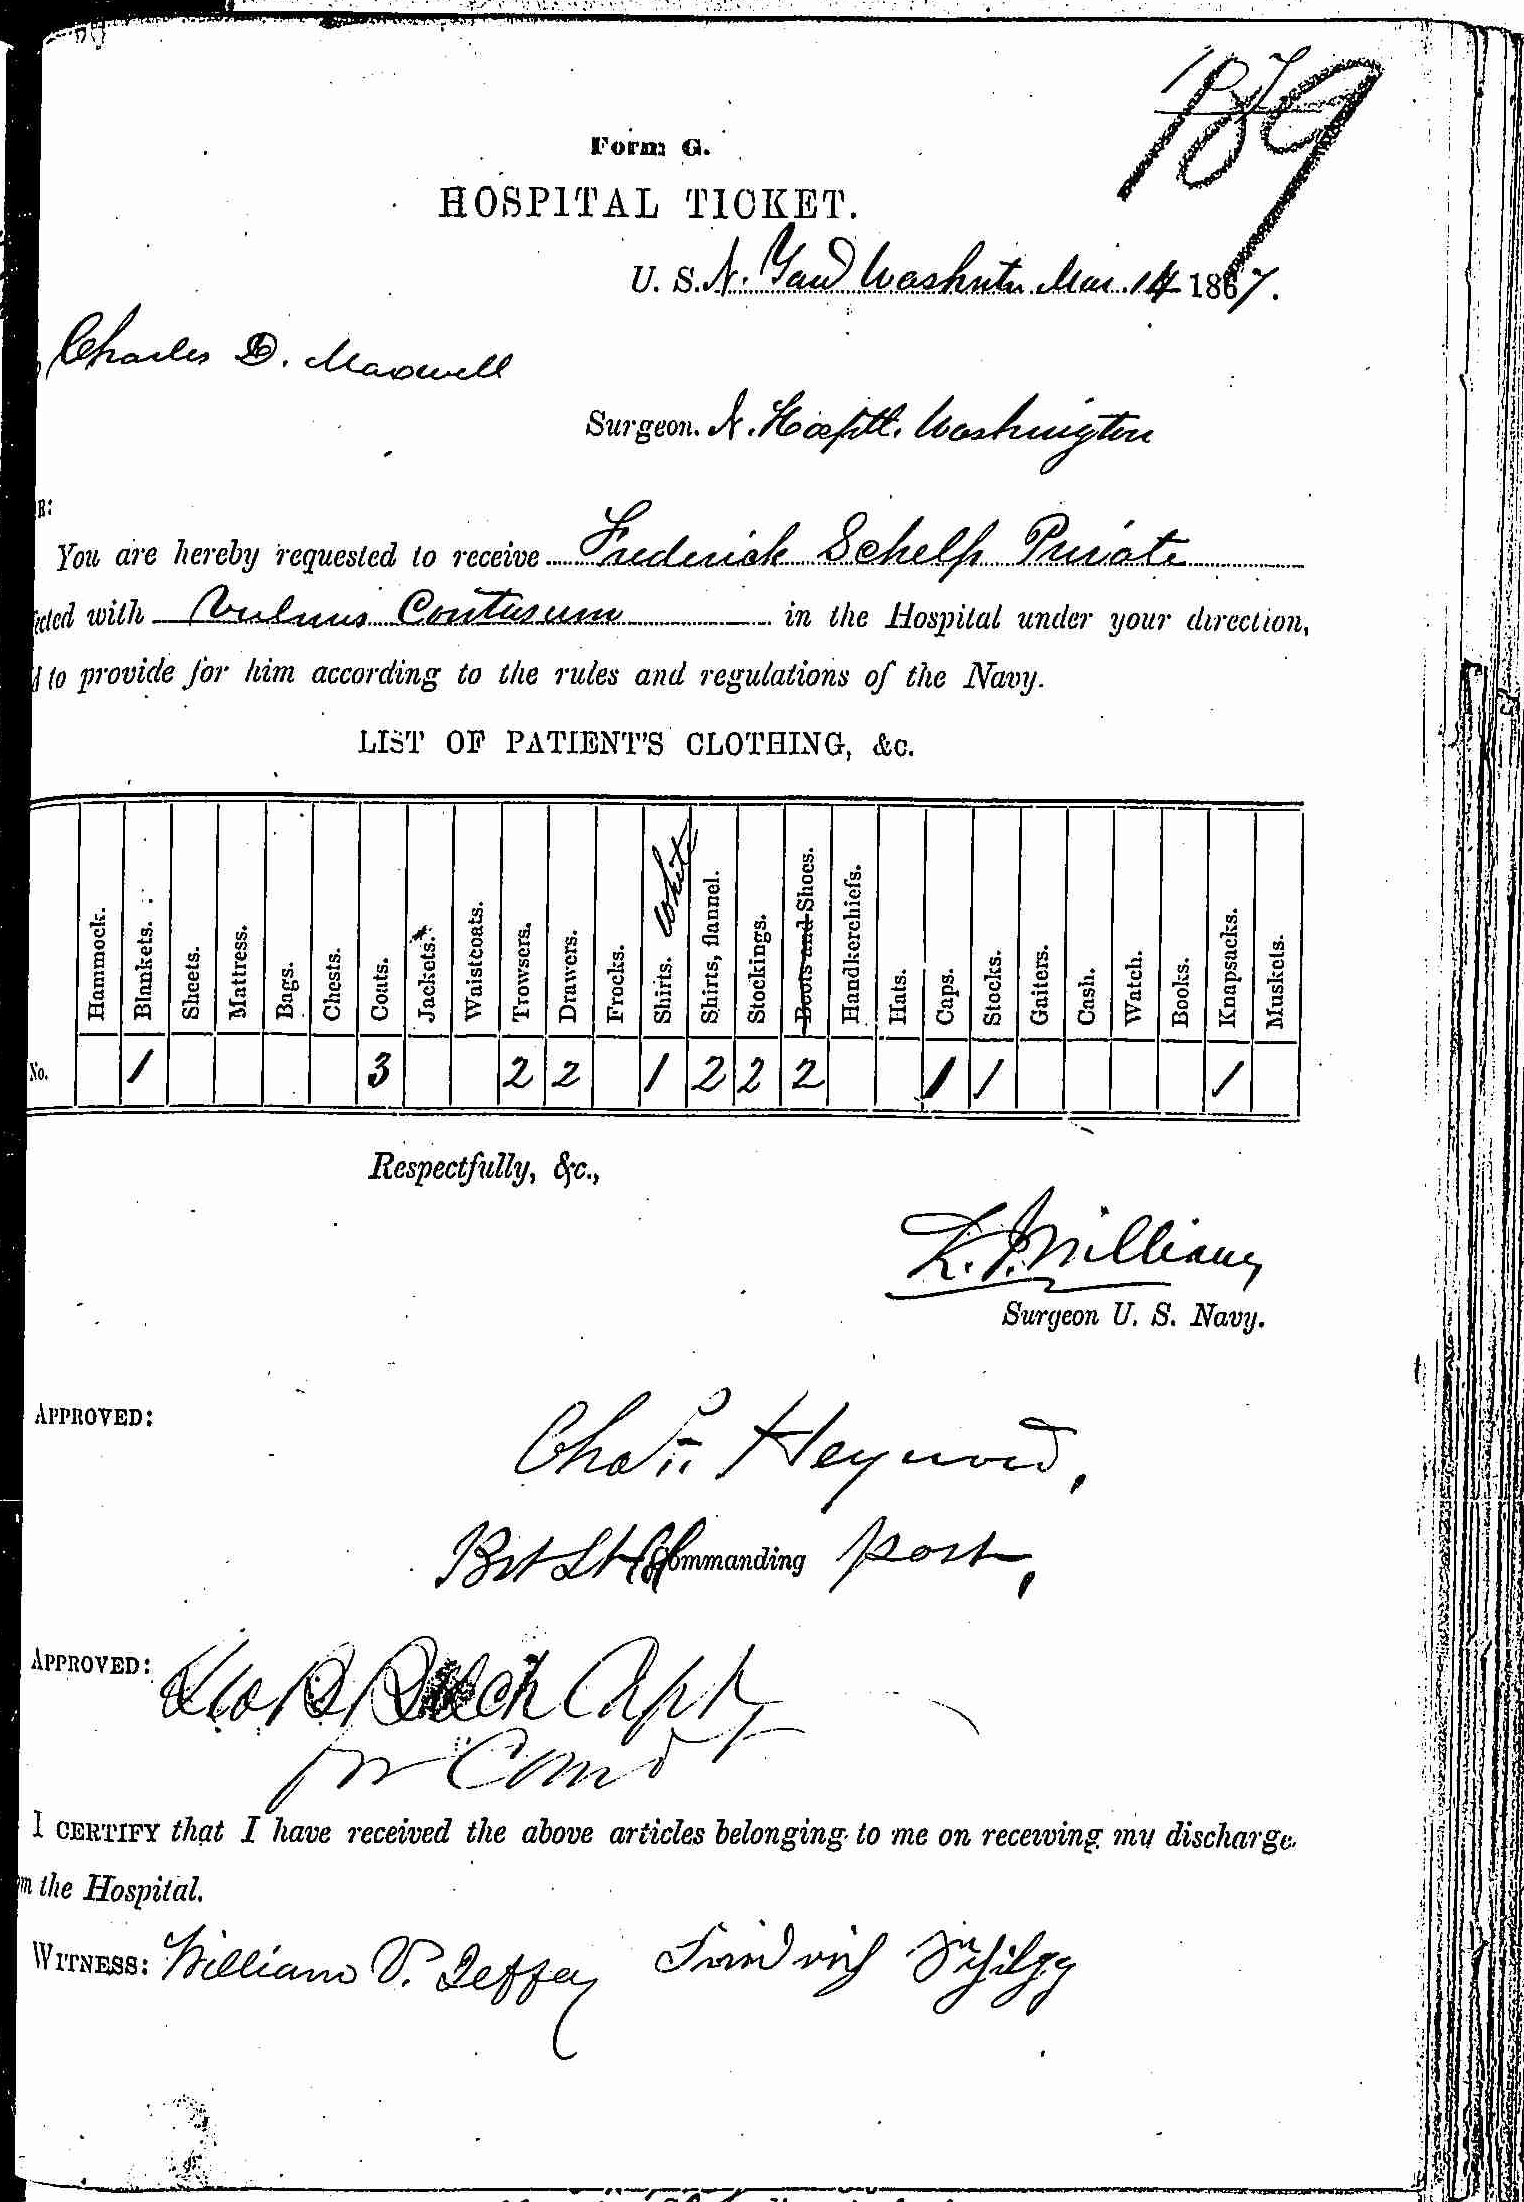 Entry for William Cathcart (page 1 of 2) in the log Hospital Tickets and Case Papers - Naval Hospital - Washington, D.C. - 1866-68